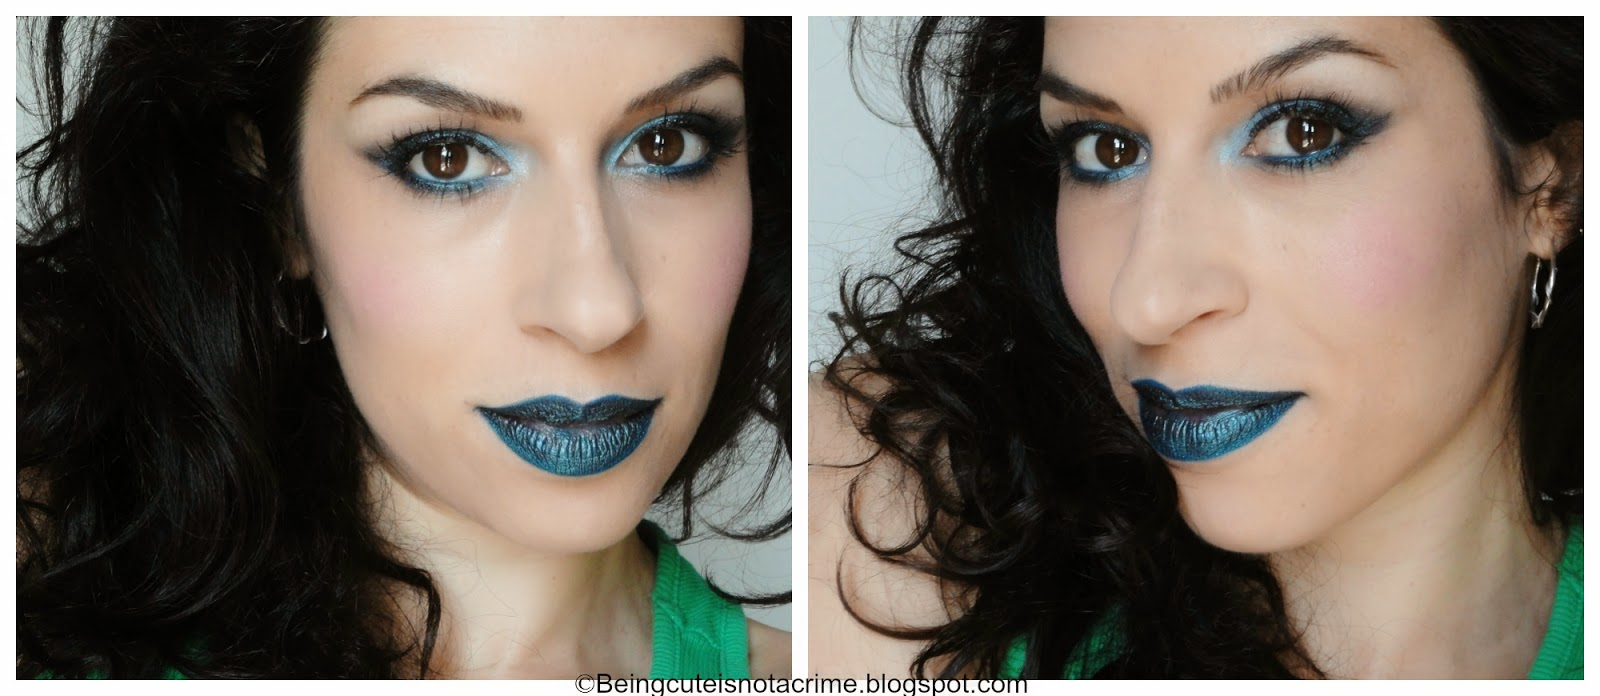 http://beingcuteisnotacrime.blogspot.nl/2014/06/make-up-serie-matchy-matchy-3-bluegreen.html